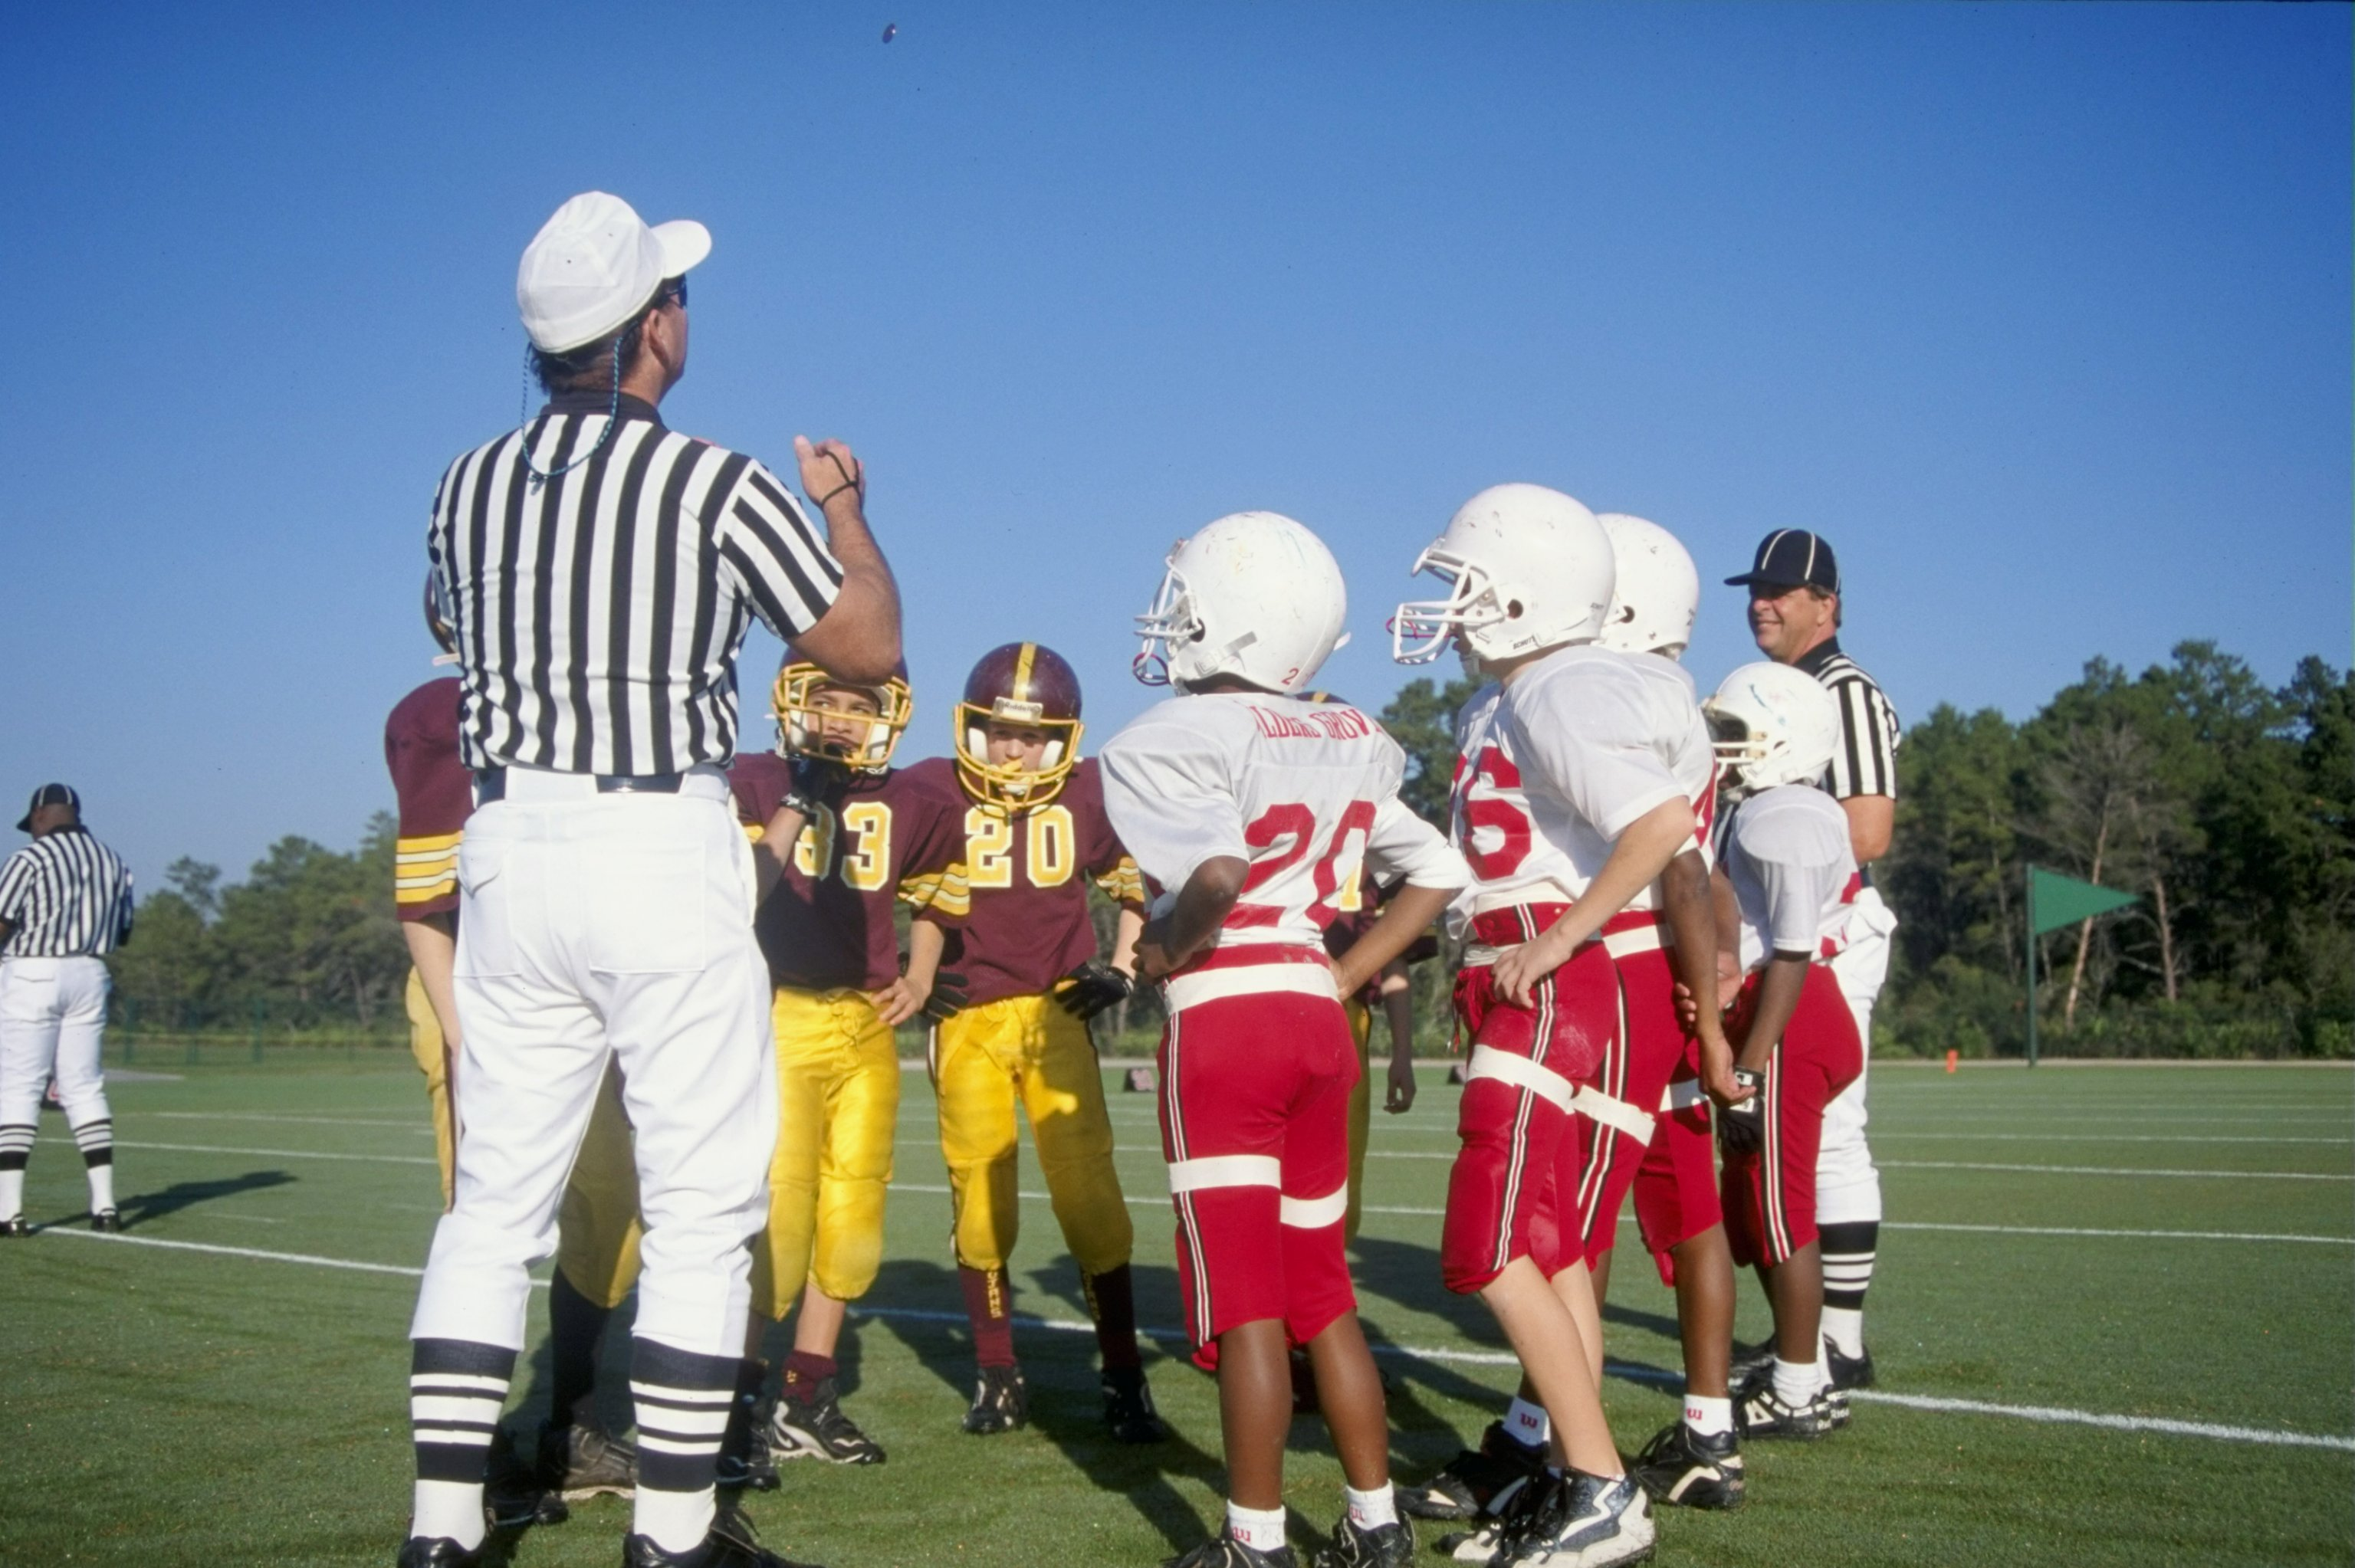 f9c16612 Questions to Consider Before Letting Your Child Play Youth Football ...